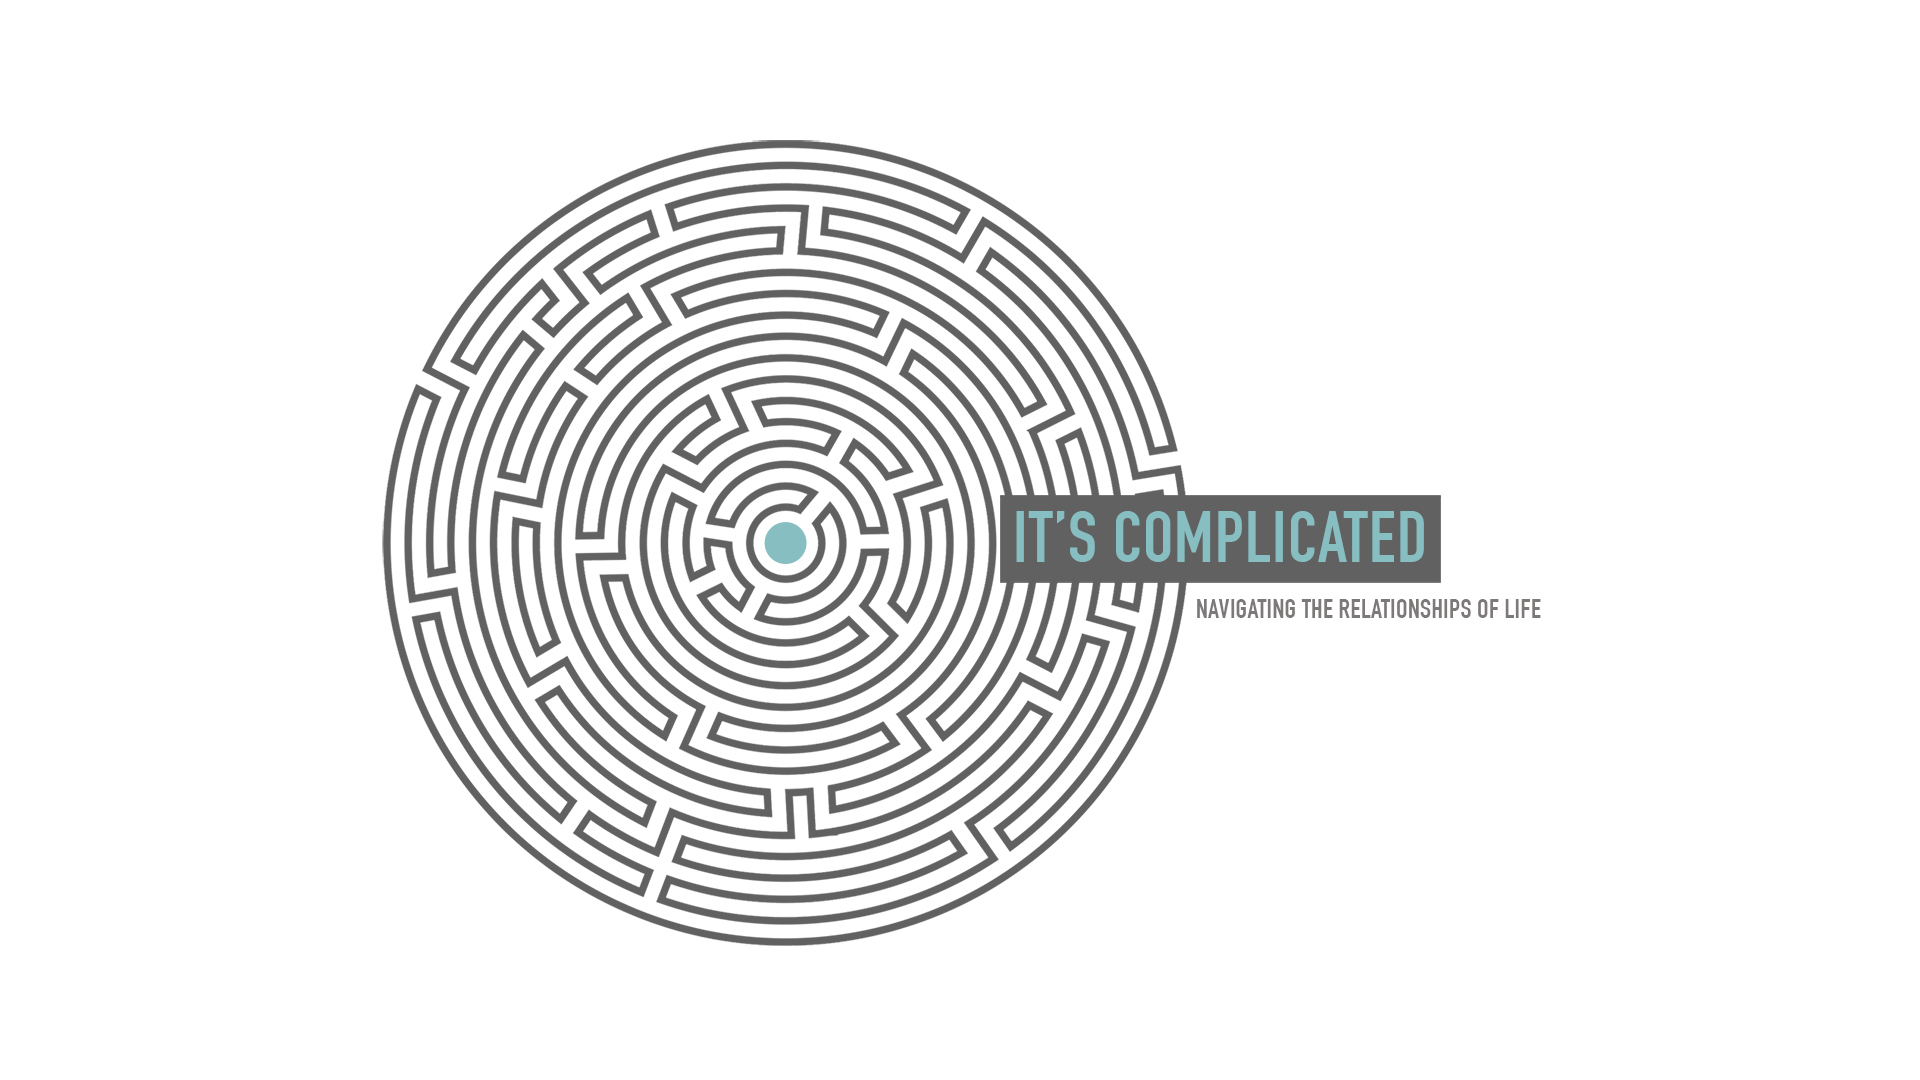 ItsComplicated_1920x1080.jpg